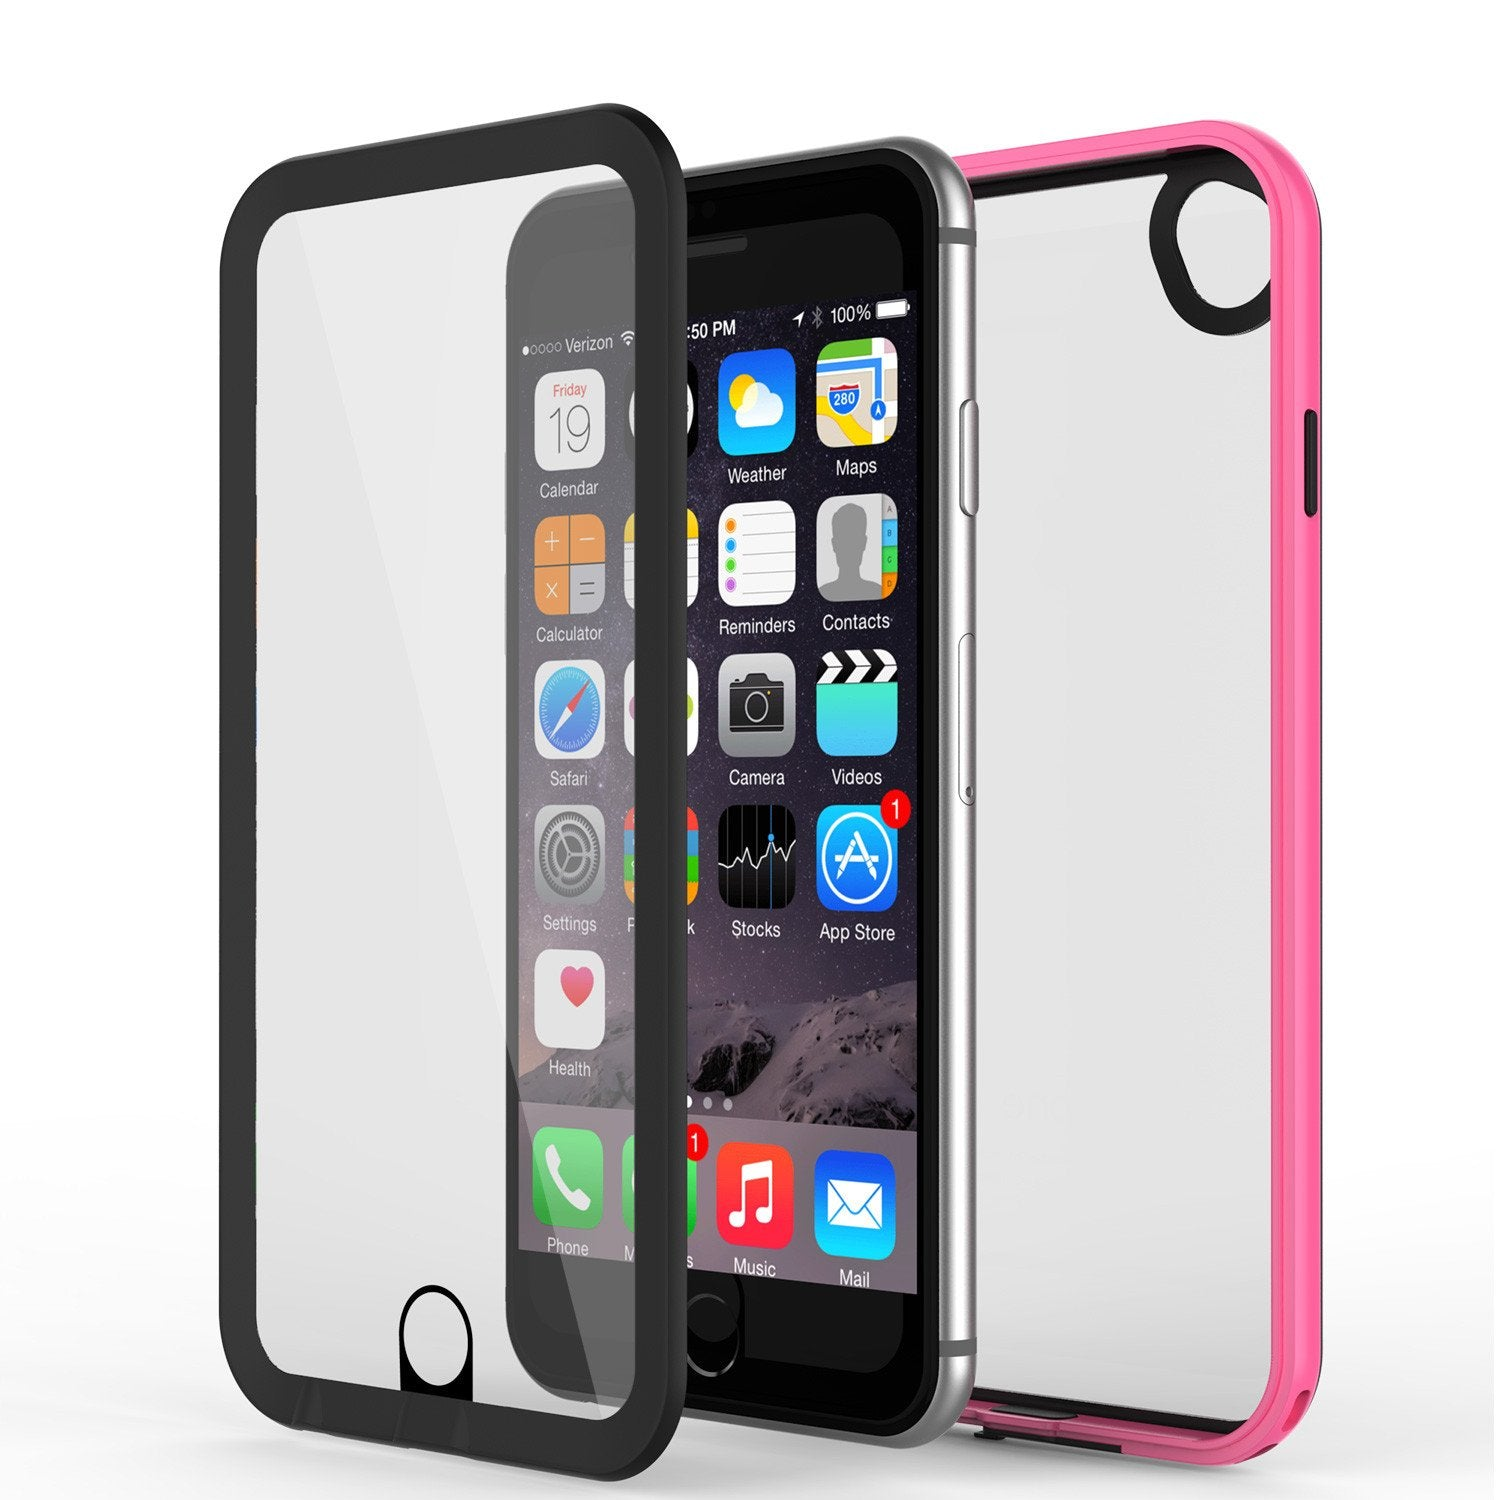 timeless design 8b9b0 6dbf2 Apple iPhone 8 Waterproof Case, PUNKcase CRYSTAL 2.0 Pink W/ Attached  Screen Protector | Warranty